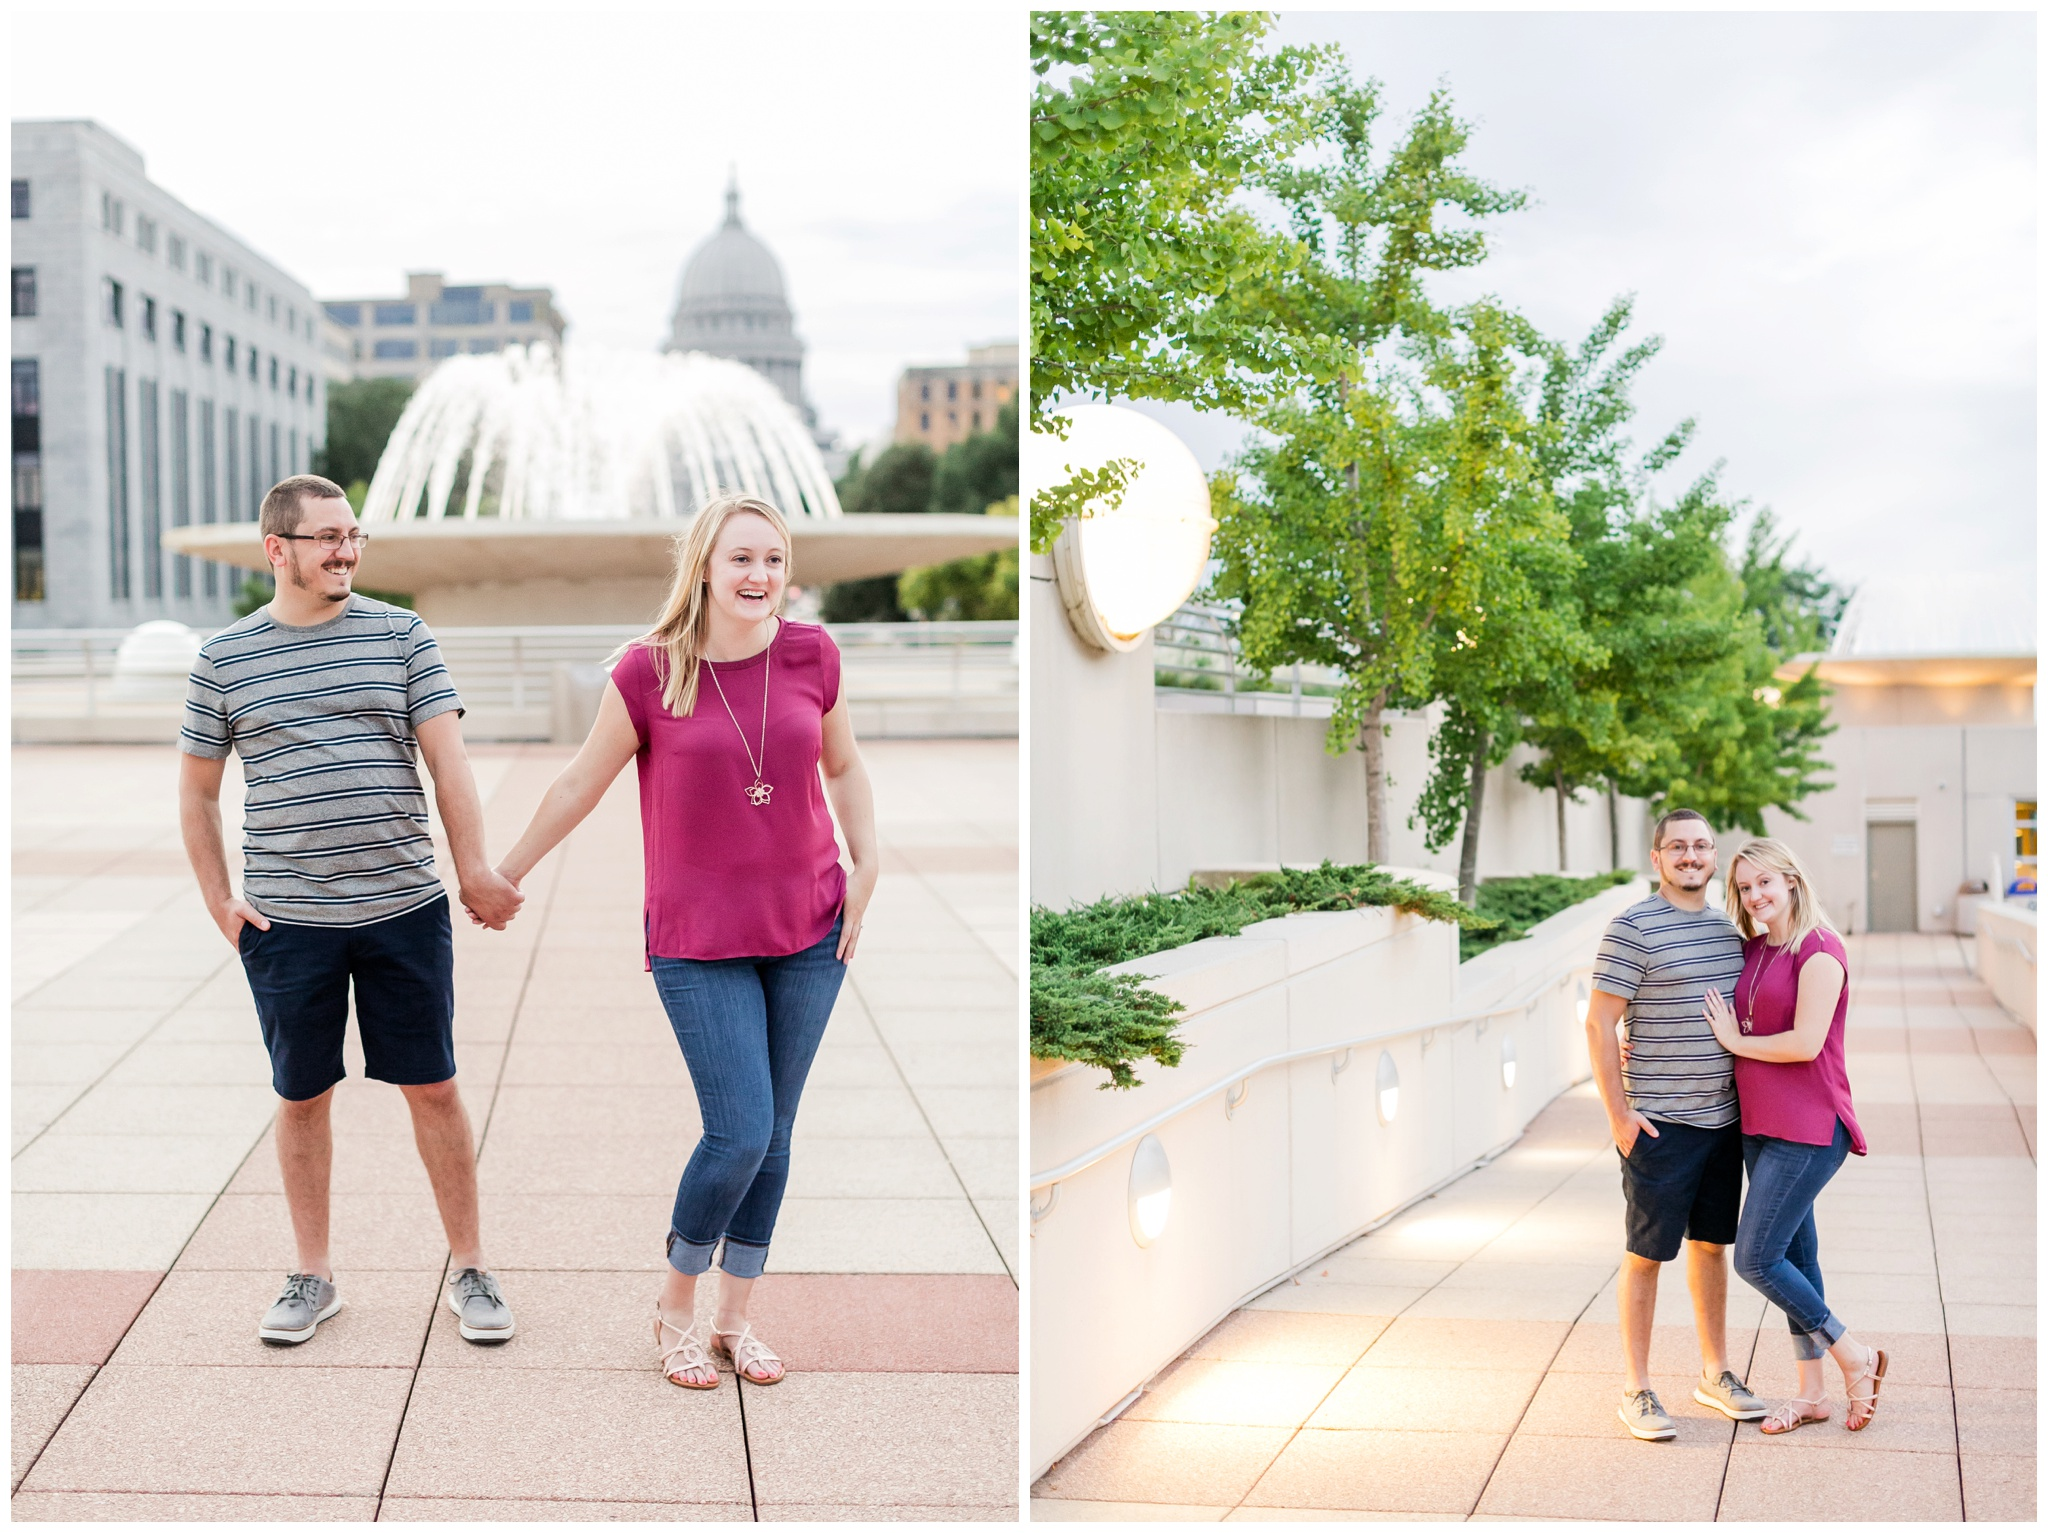 Downtown_madison_wisconsin_engagement_session_4229.jpg